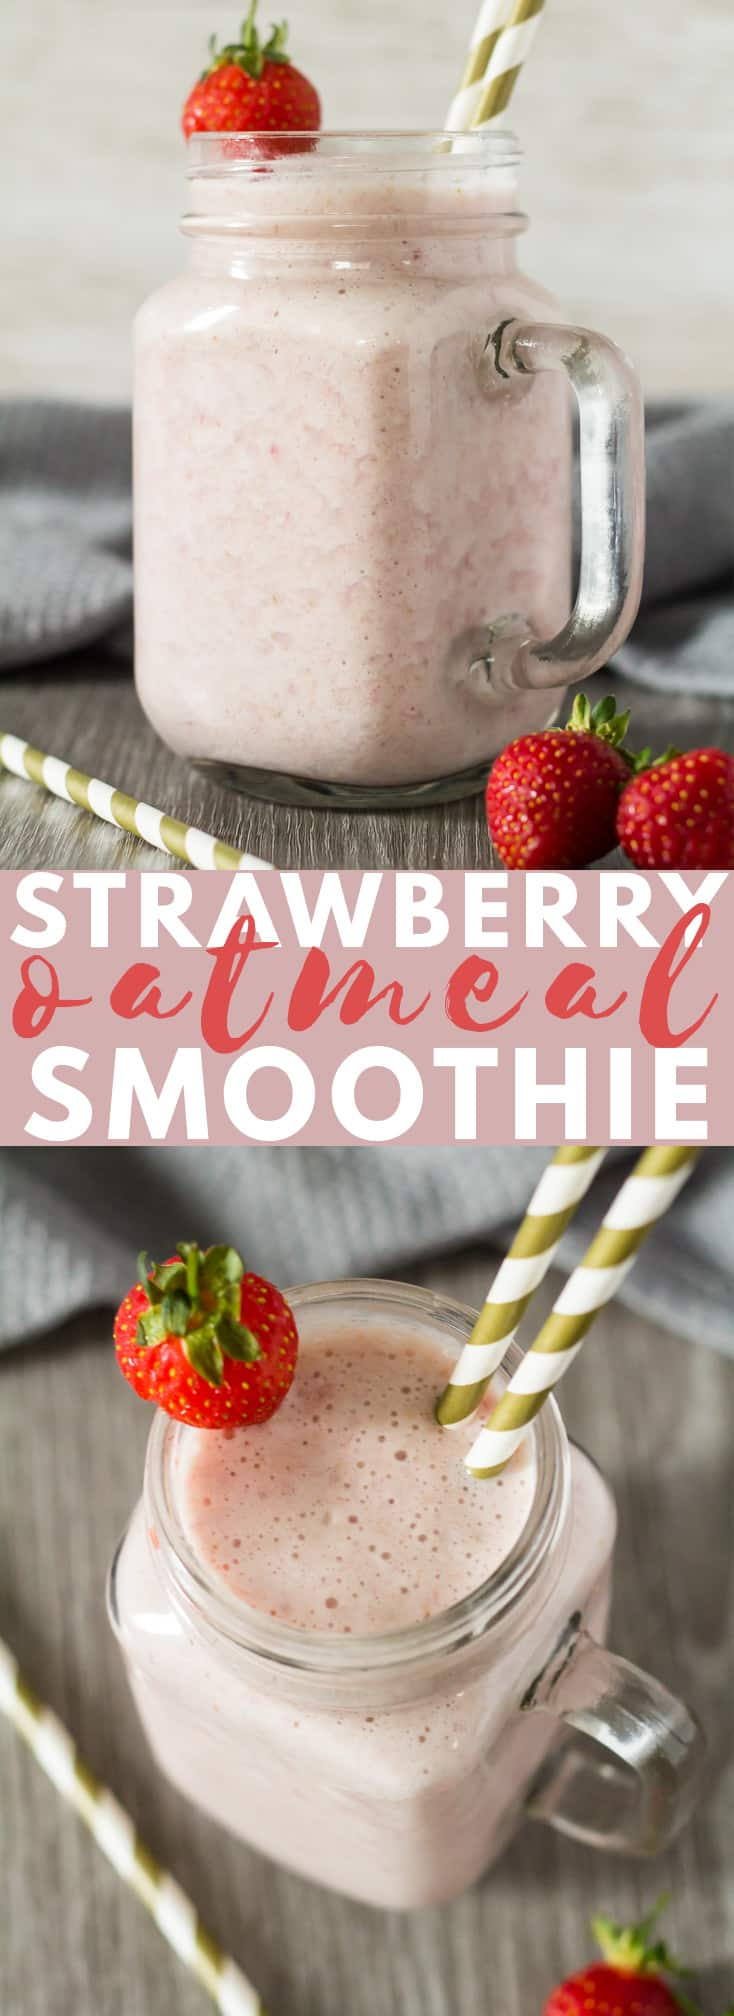 Strawberry Oatmeal Breakfast Smoothie - Deliciously thick and creamy strawberry smoothie that is made with oats, making it perfect for breakfast or snack!